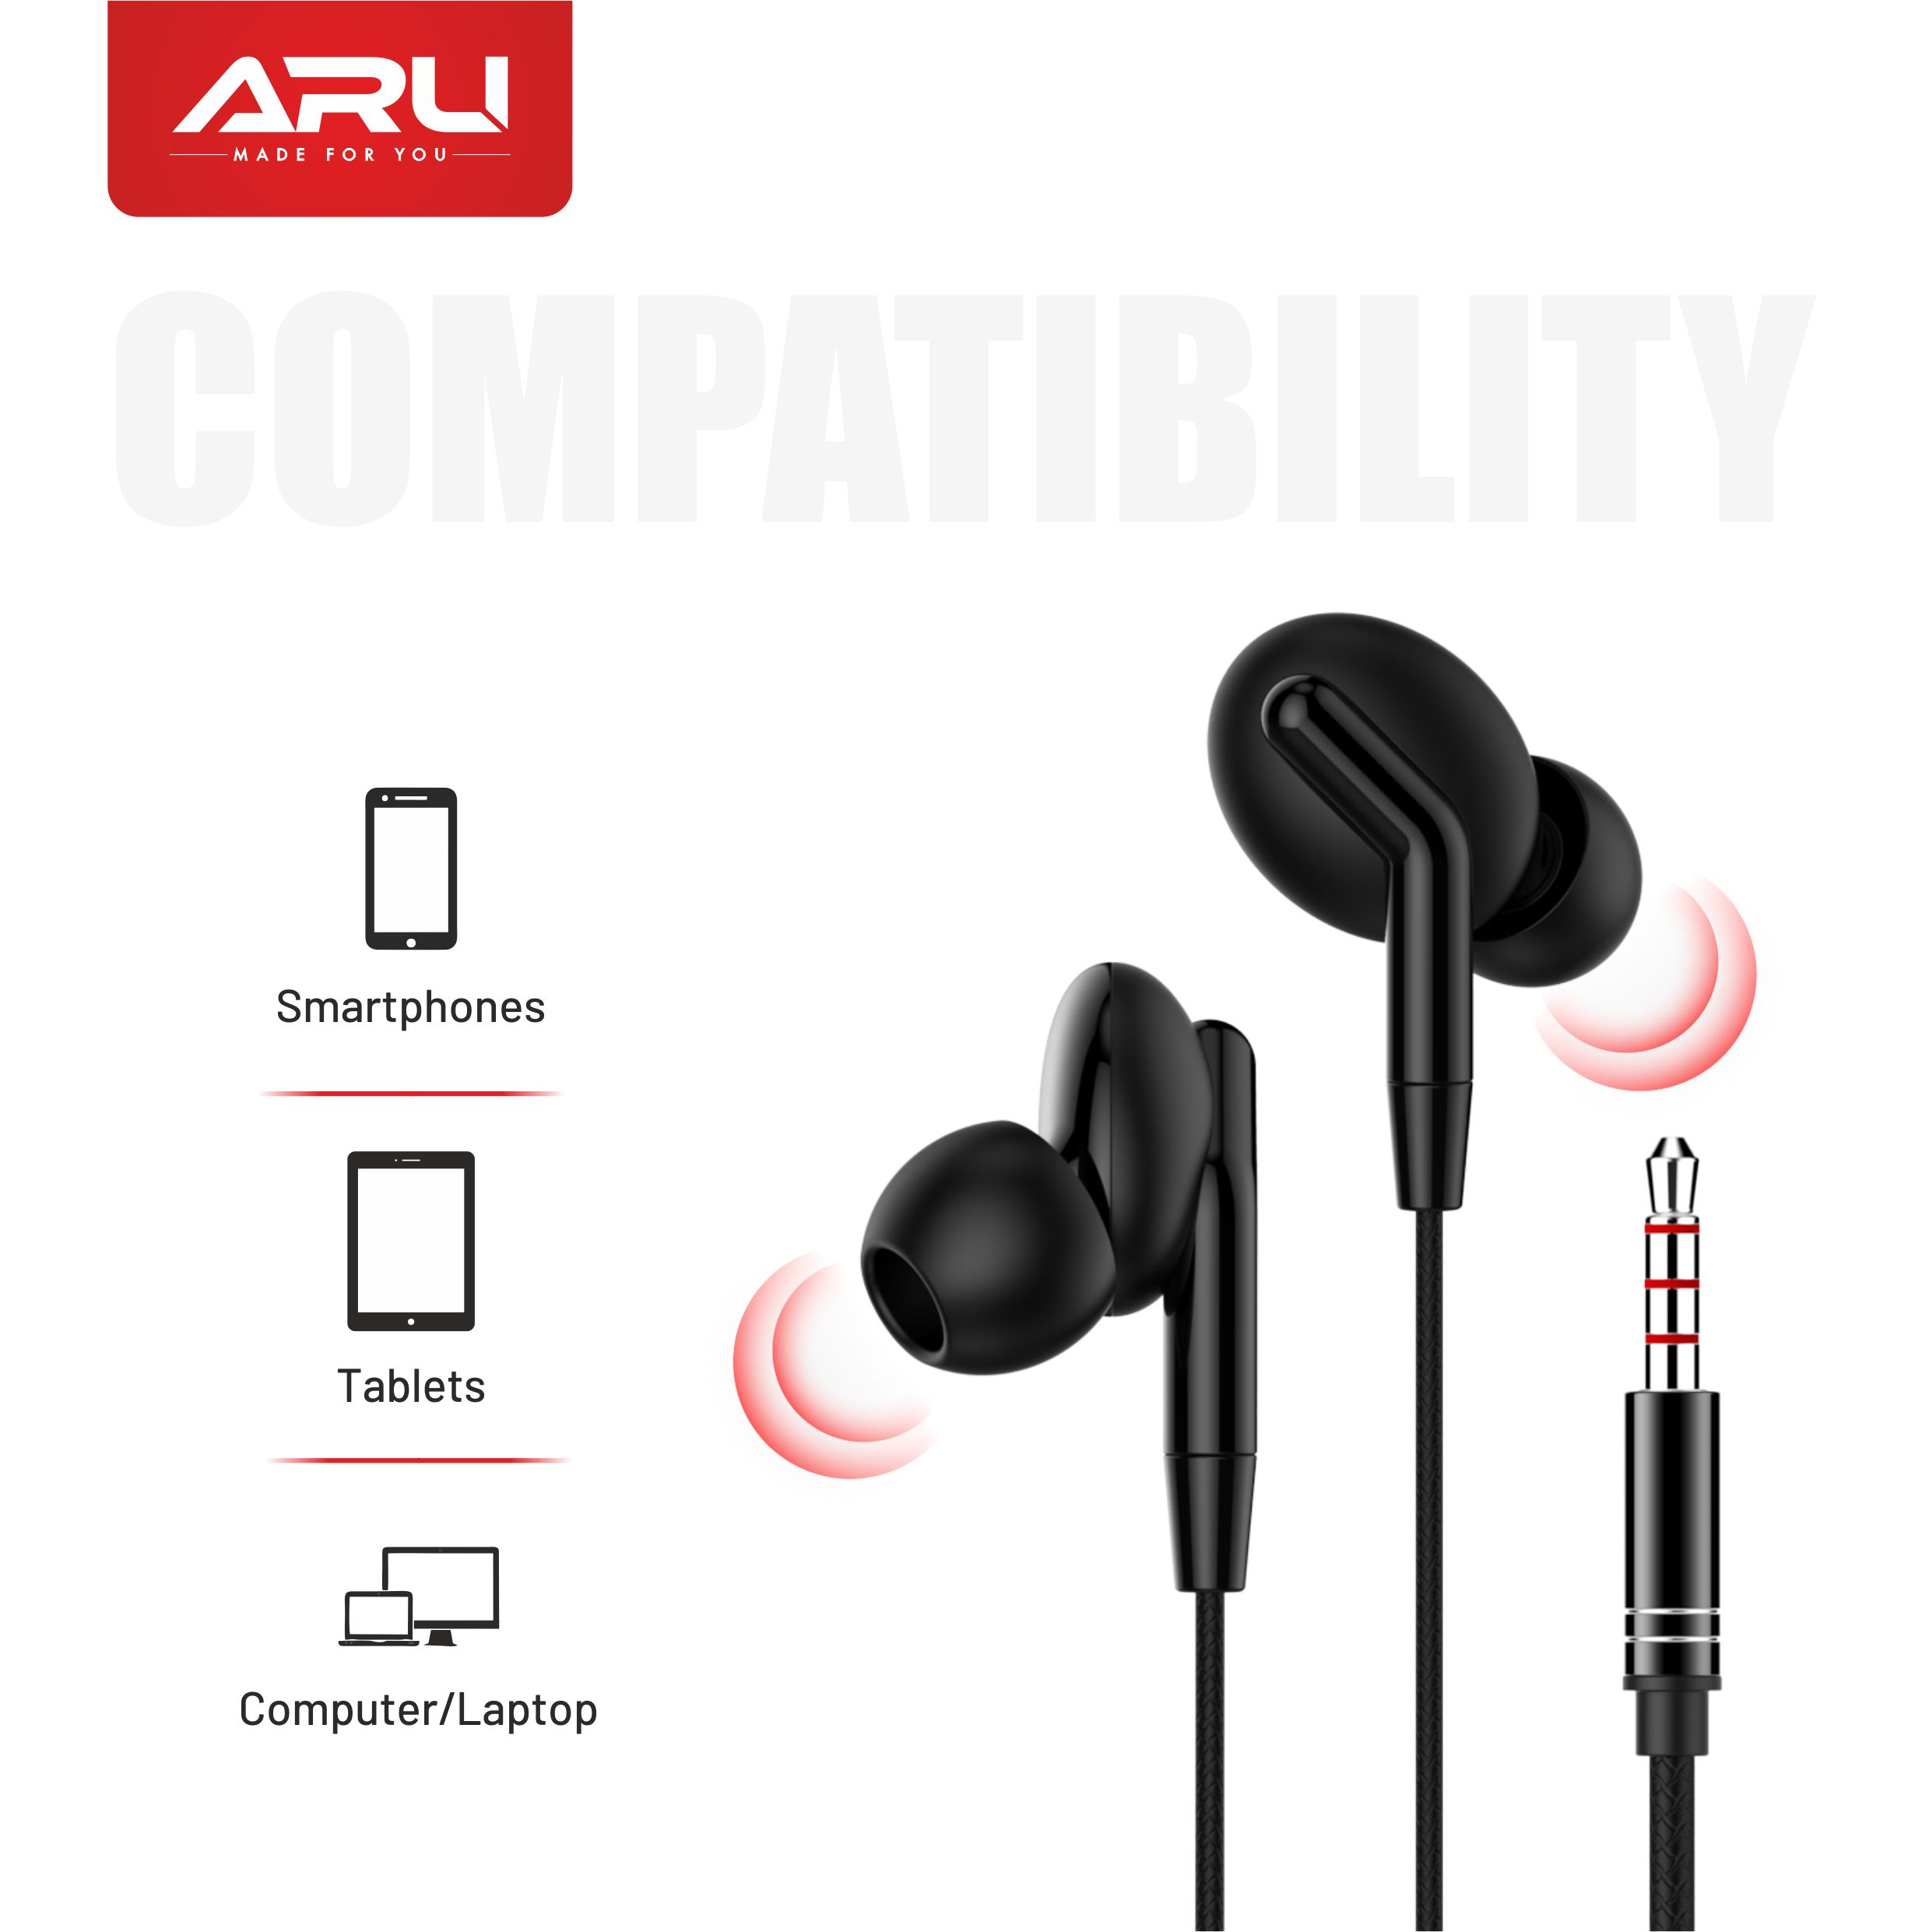 ARU AEP-92 Universal In Ear Headset With Mic-Black